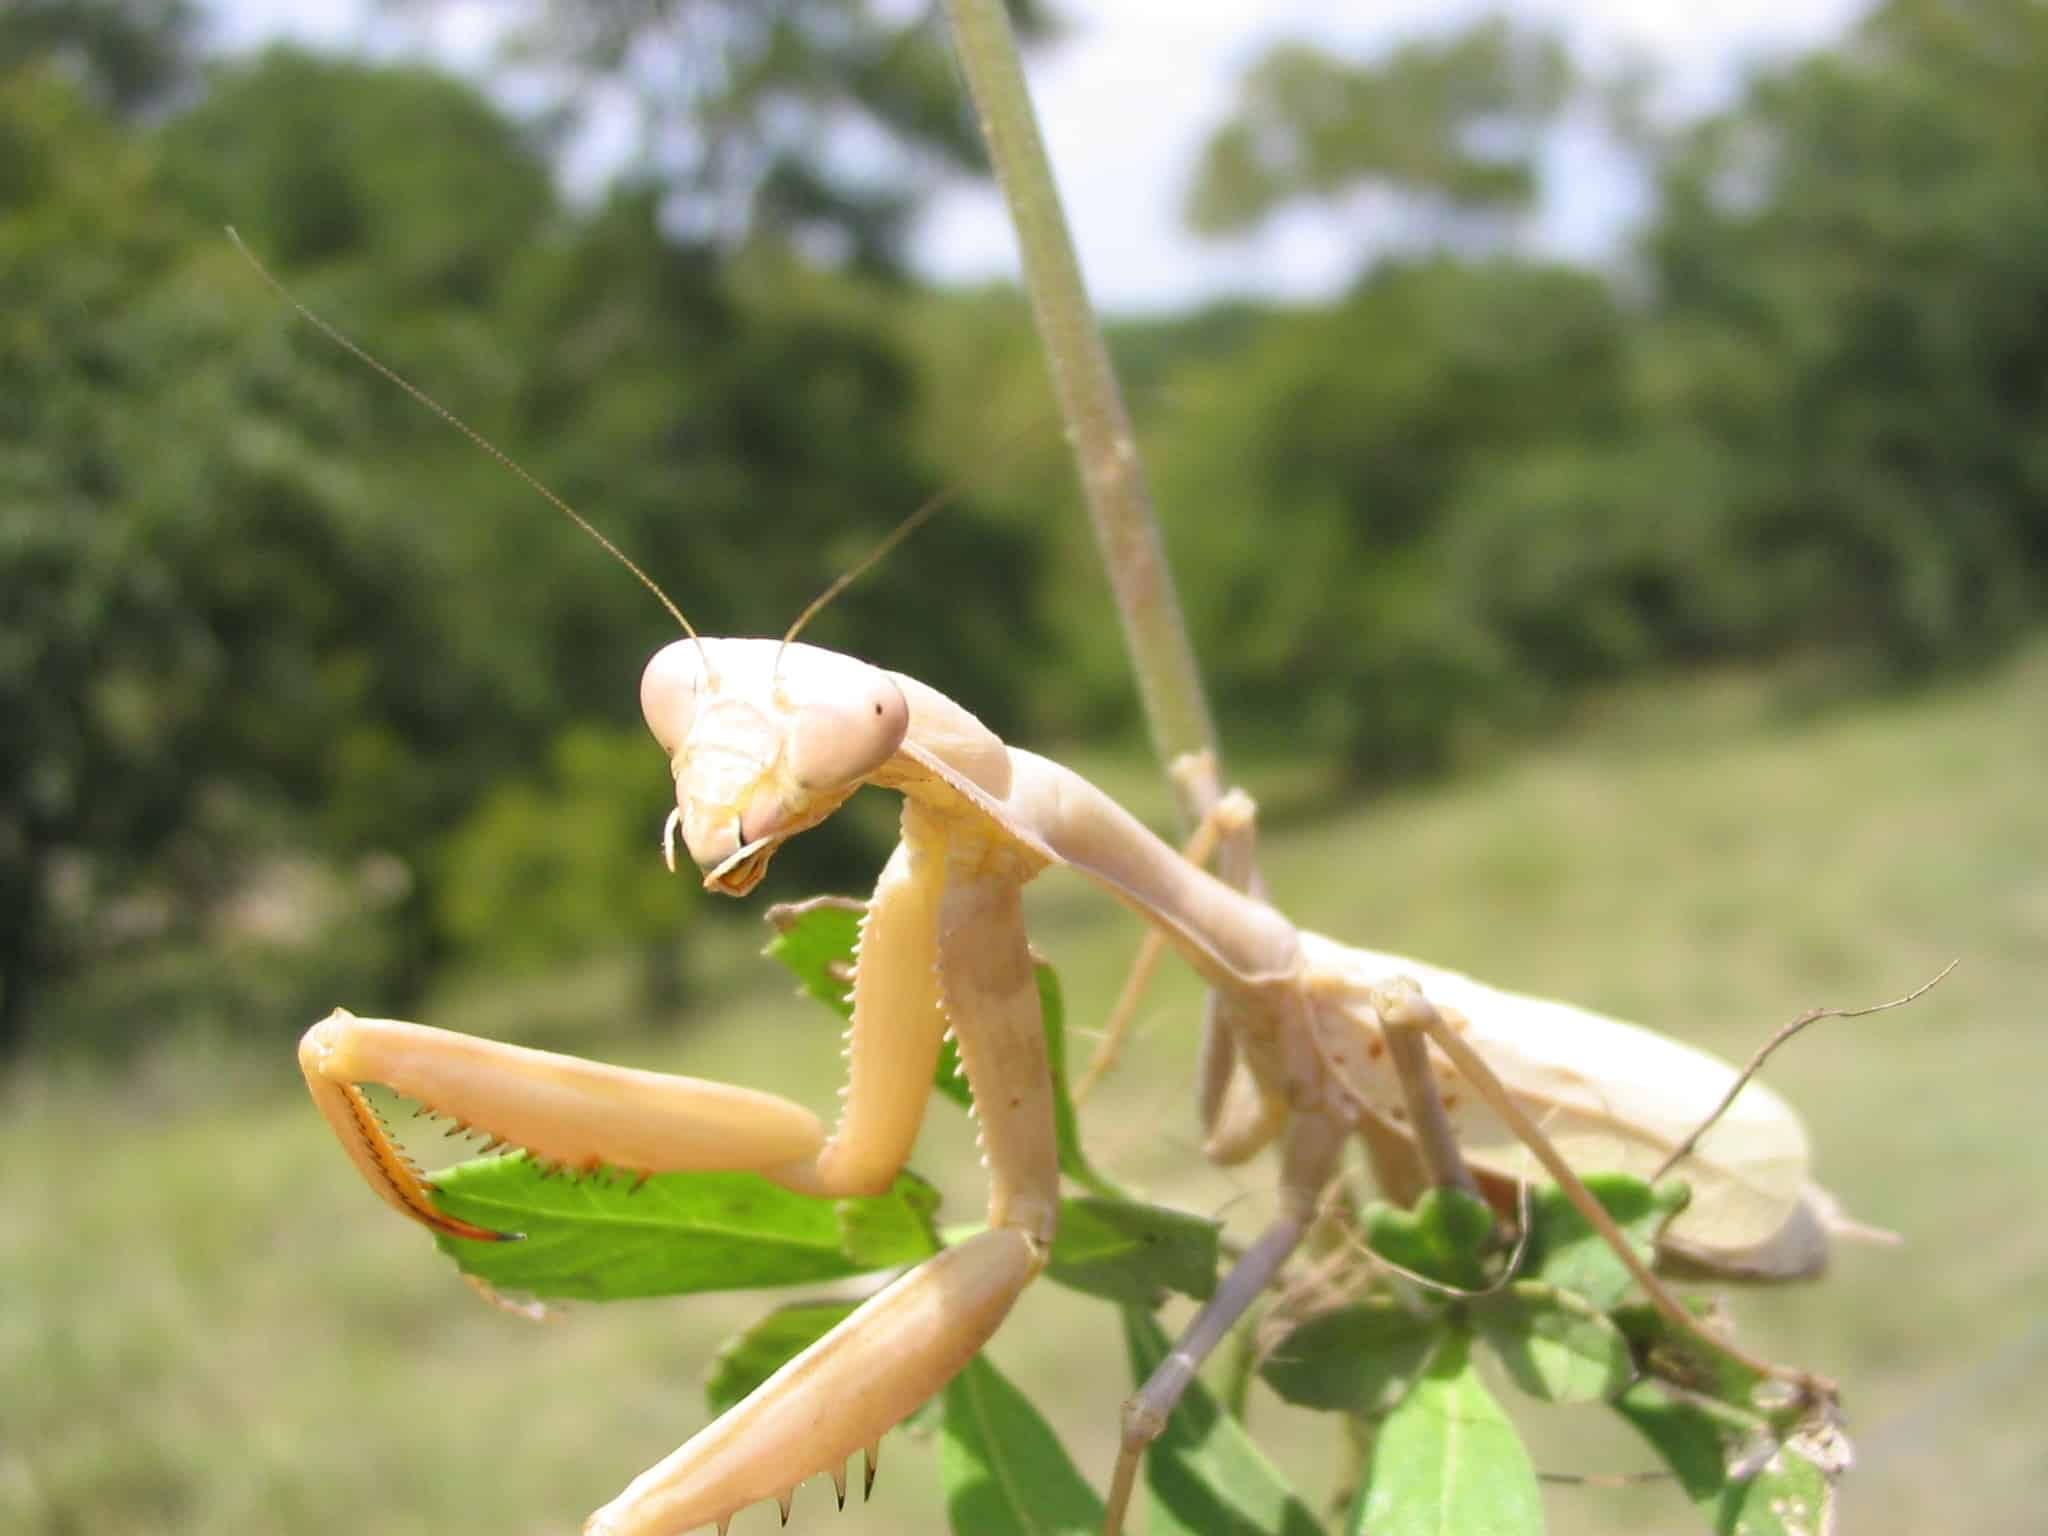 White Praying Mantis